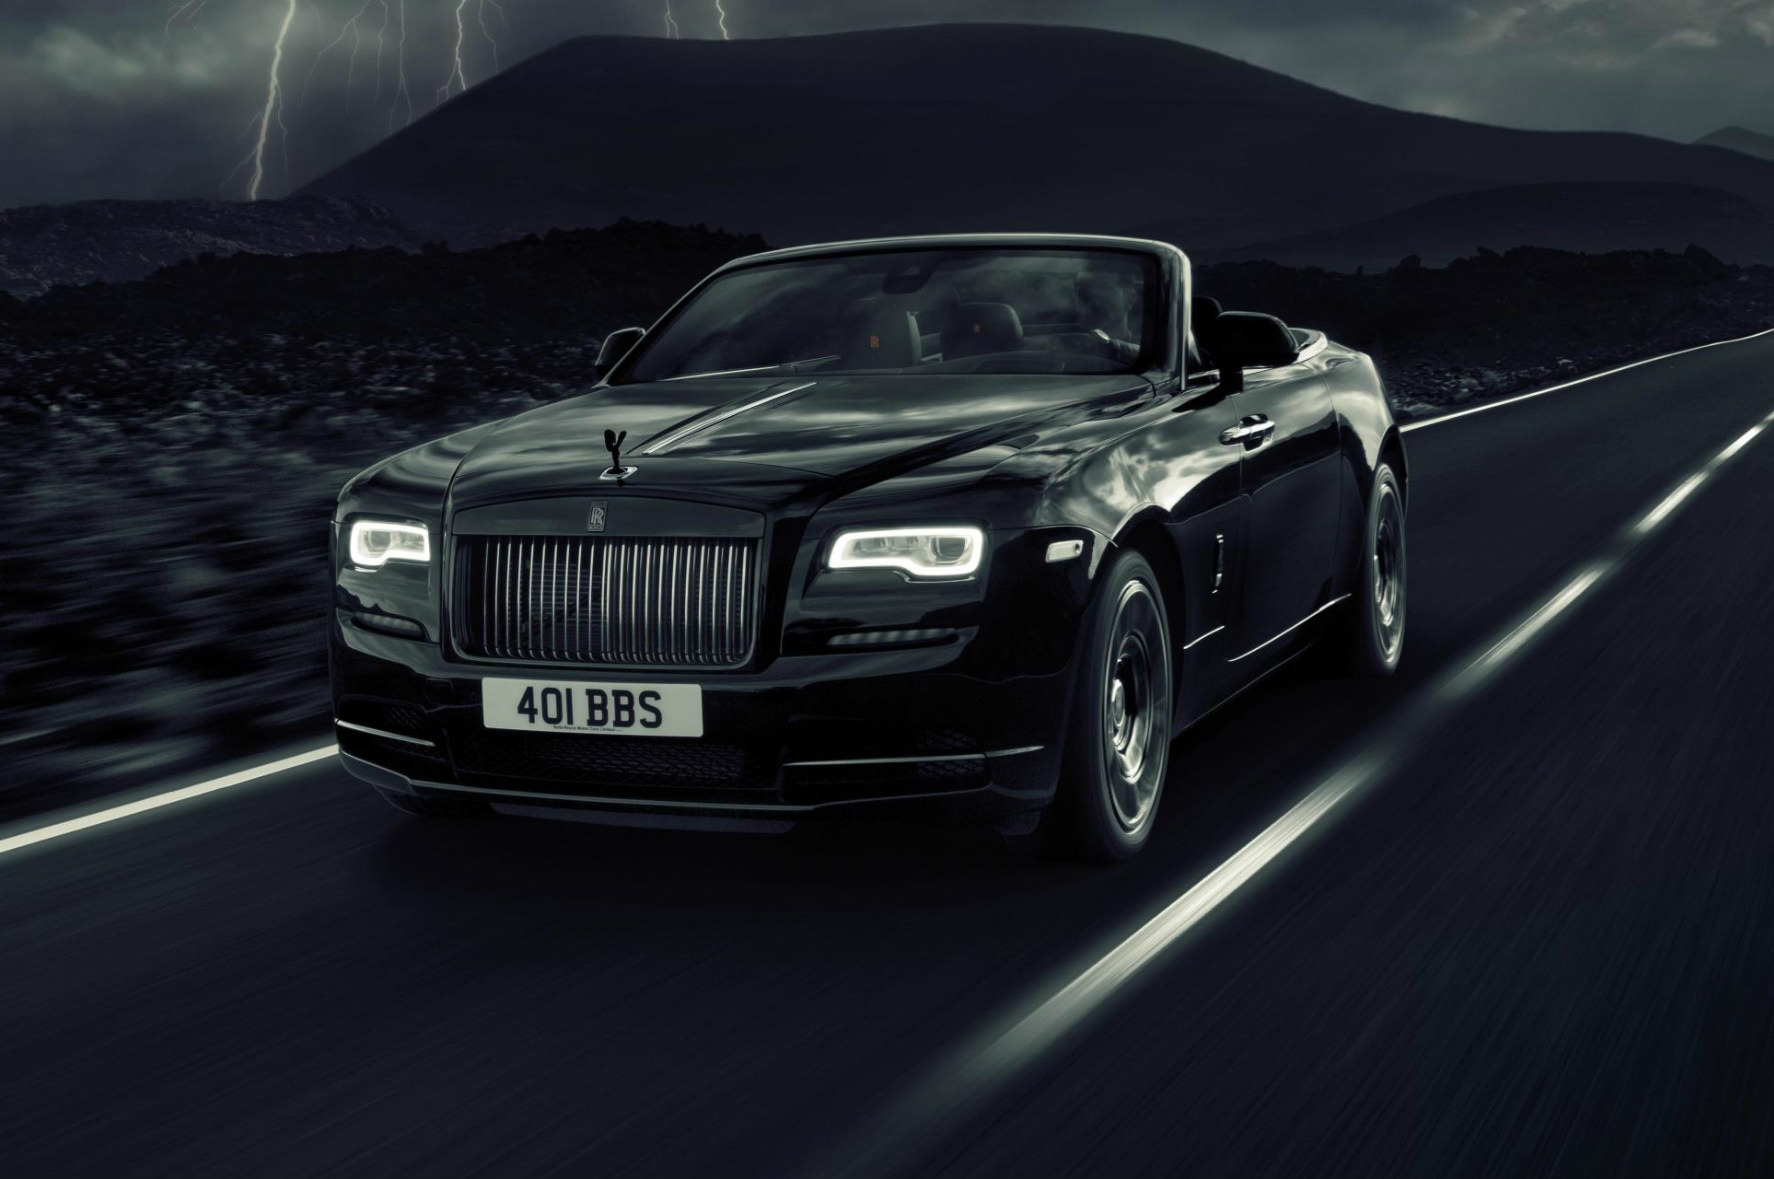 image of a black rolls royce dawn black badge car